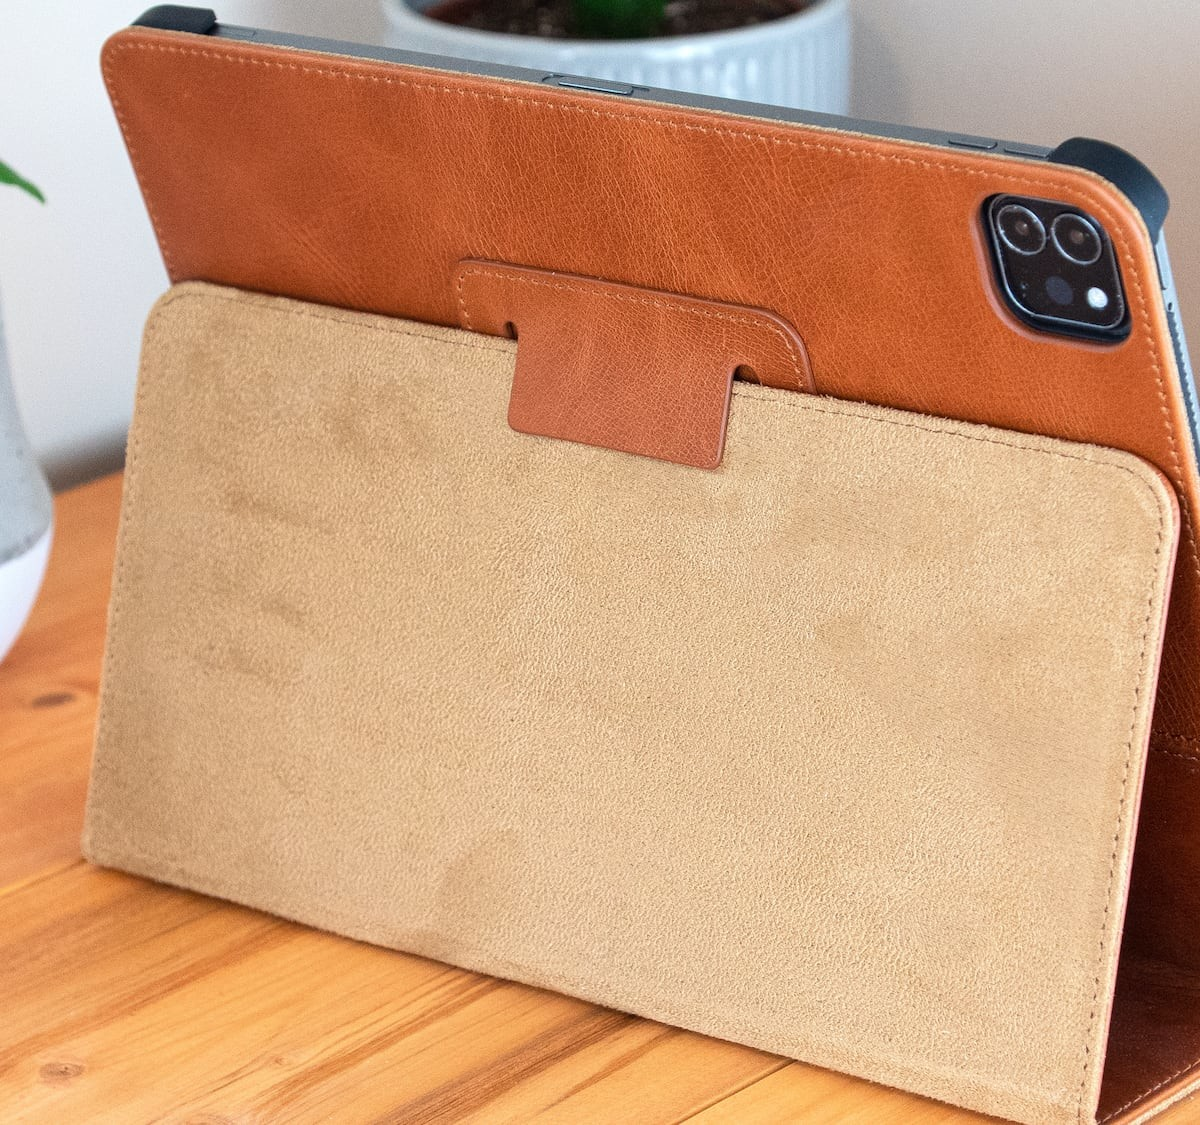 Casemade Real Leather iPad Covers protects your device with class